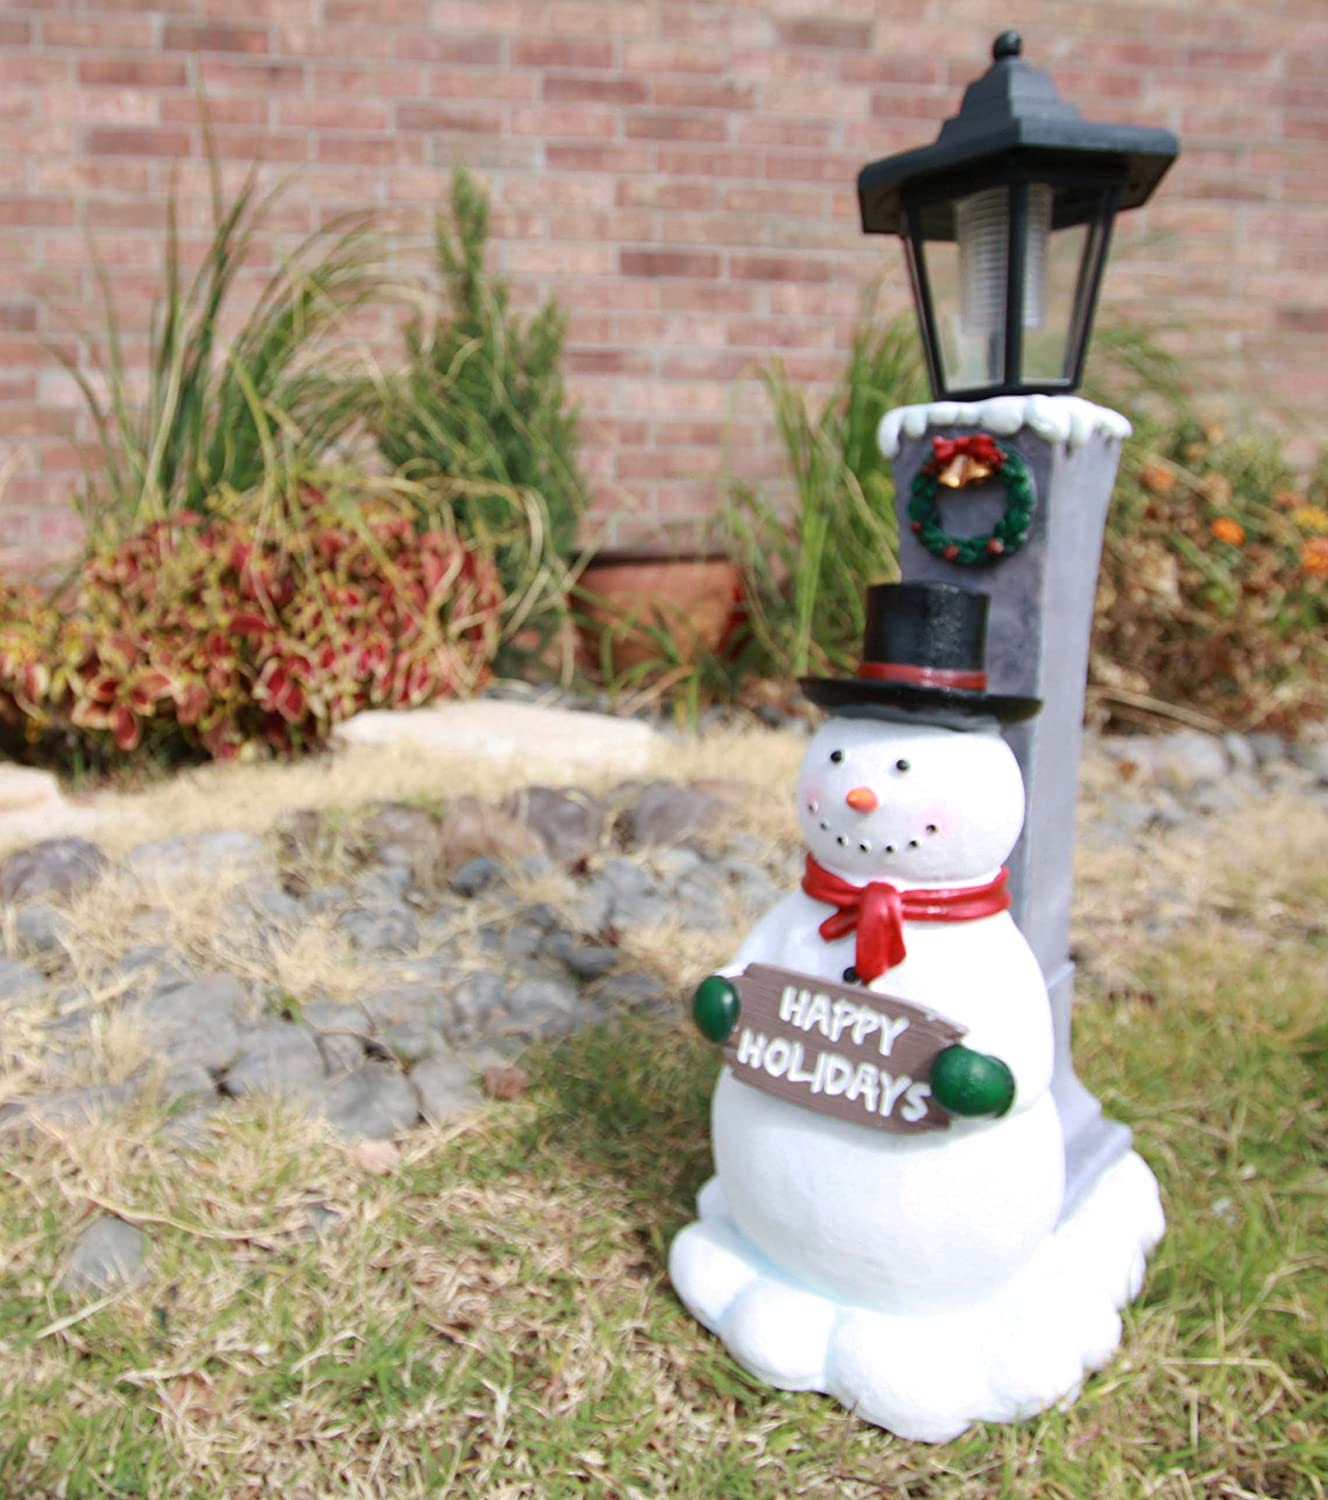 "Ebros Jolly Christmas Season Frosty The Snowman Decorative Statue With Solar LED Light Lantern Lamp 18.5""H As Home Patio Guest Greeter Welcome Decor With Happy Holidays Sign Plaque"